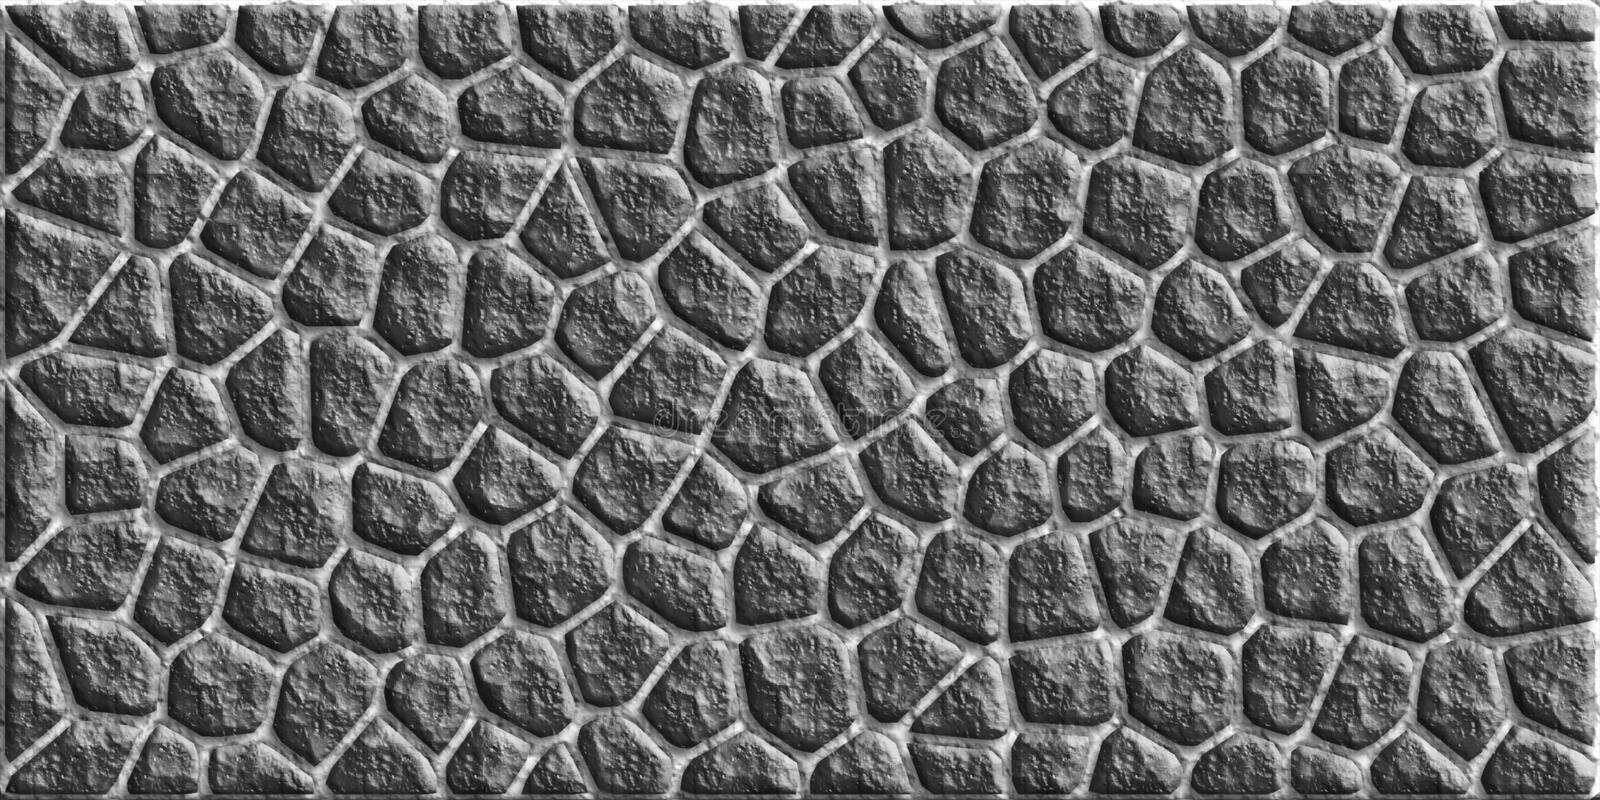 Cobblestone. Black on white cobblestone texture royalty free illustration